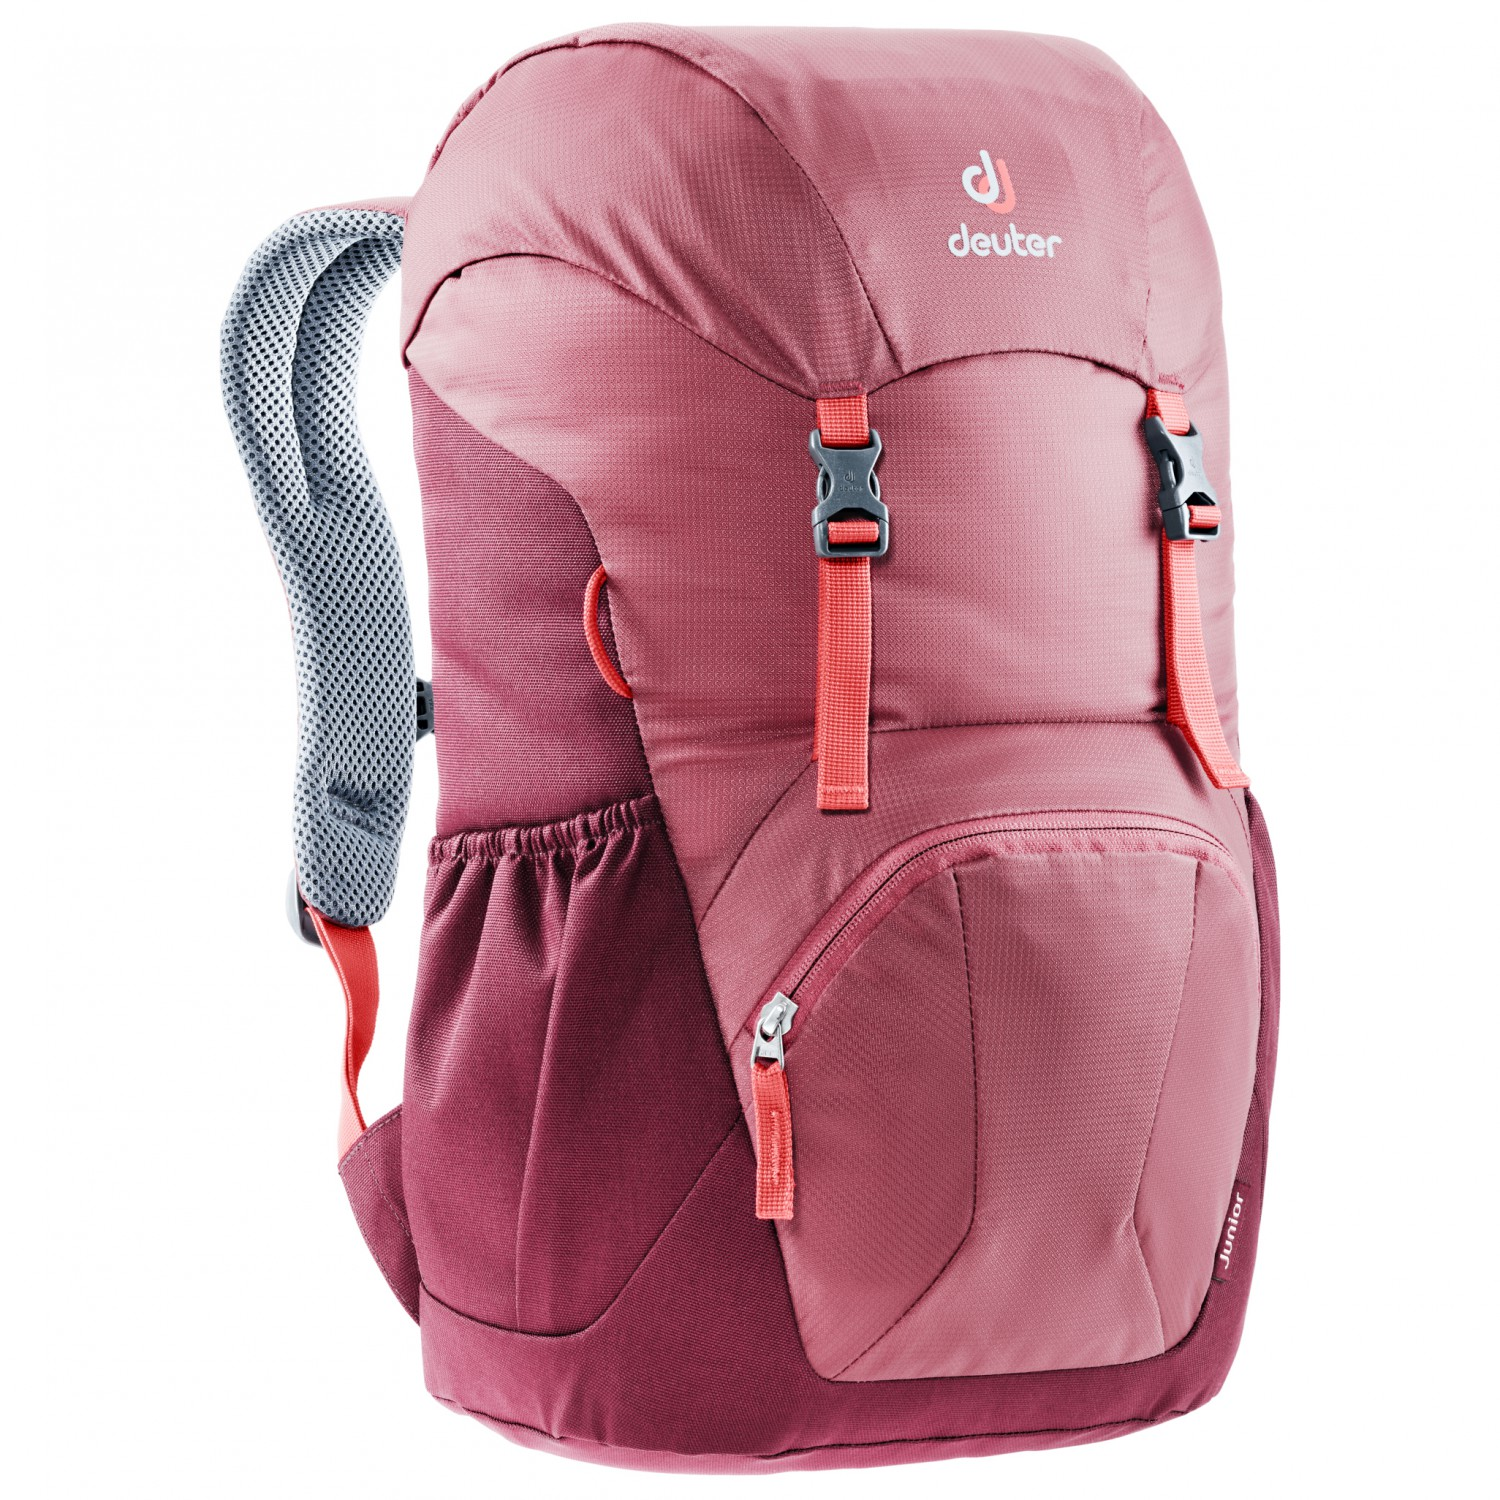 641c02bb7dc Deuter Junior - Backpack Kids | Buy online | Alpinetrek.co.uk